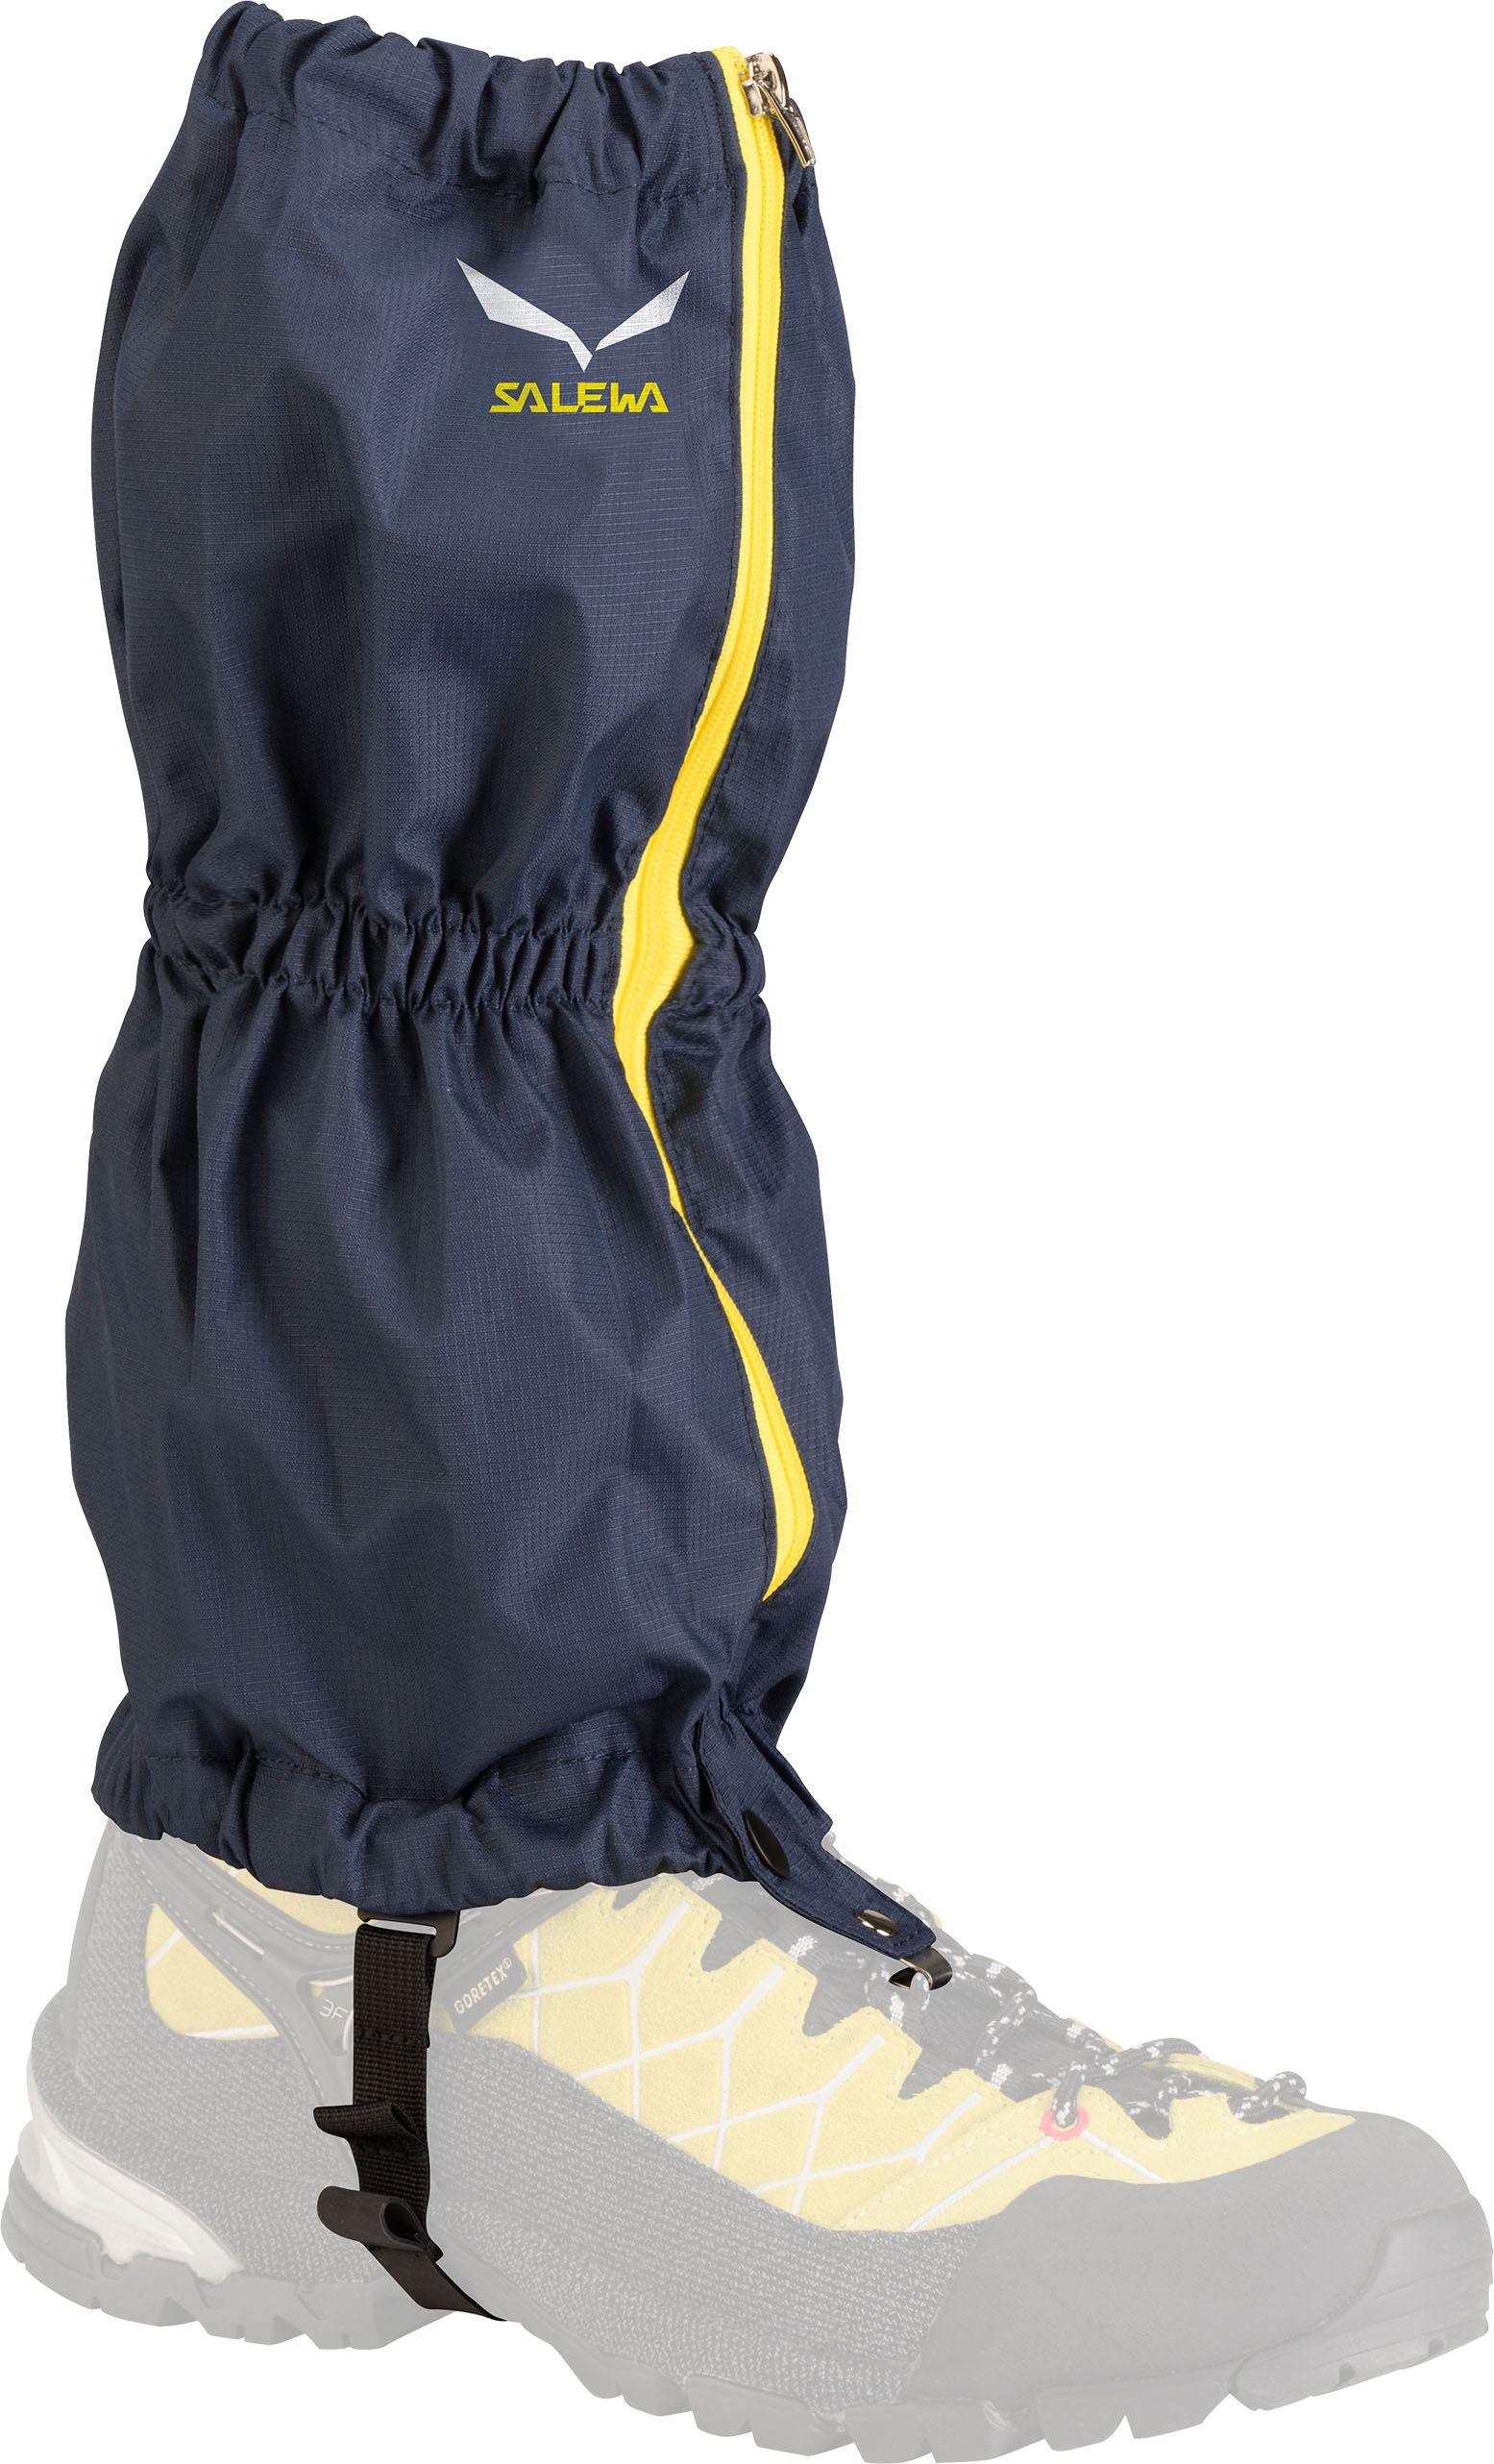 Гетры Salewa 2016 Gaiters HIKING GAITER L NAVY / - артикул: 700610352